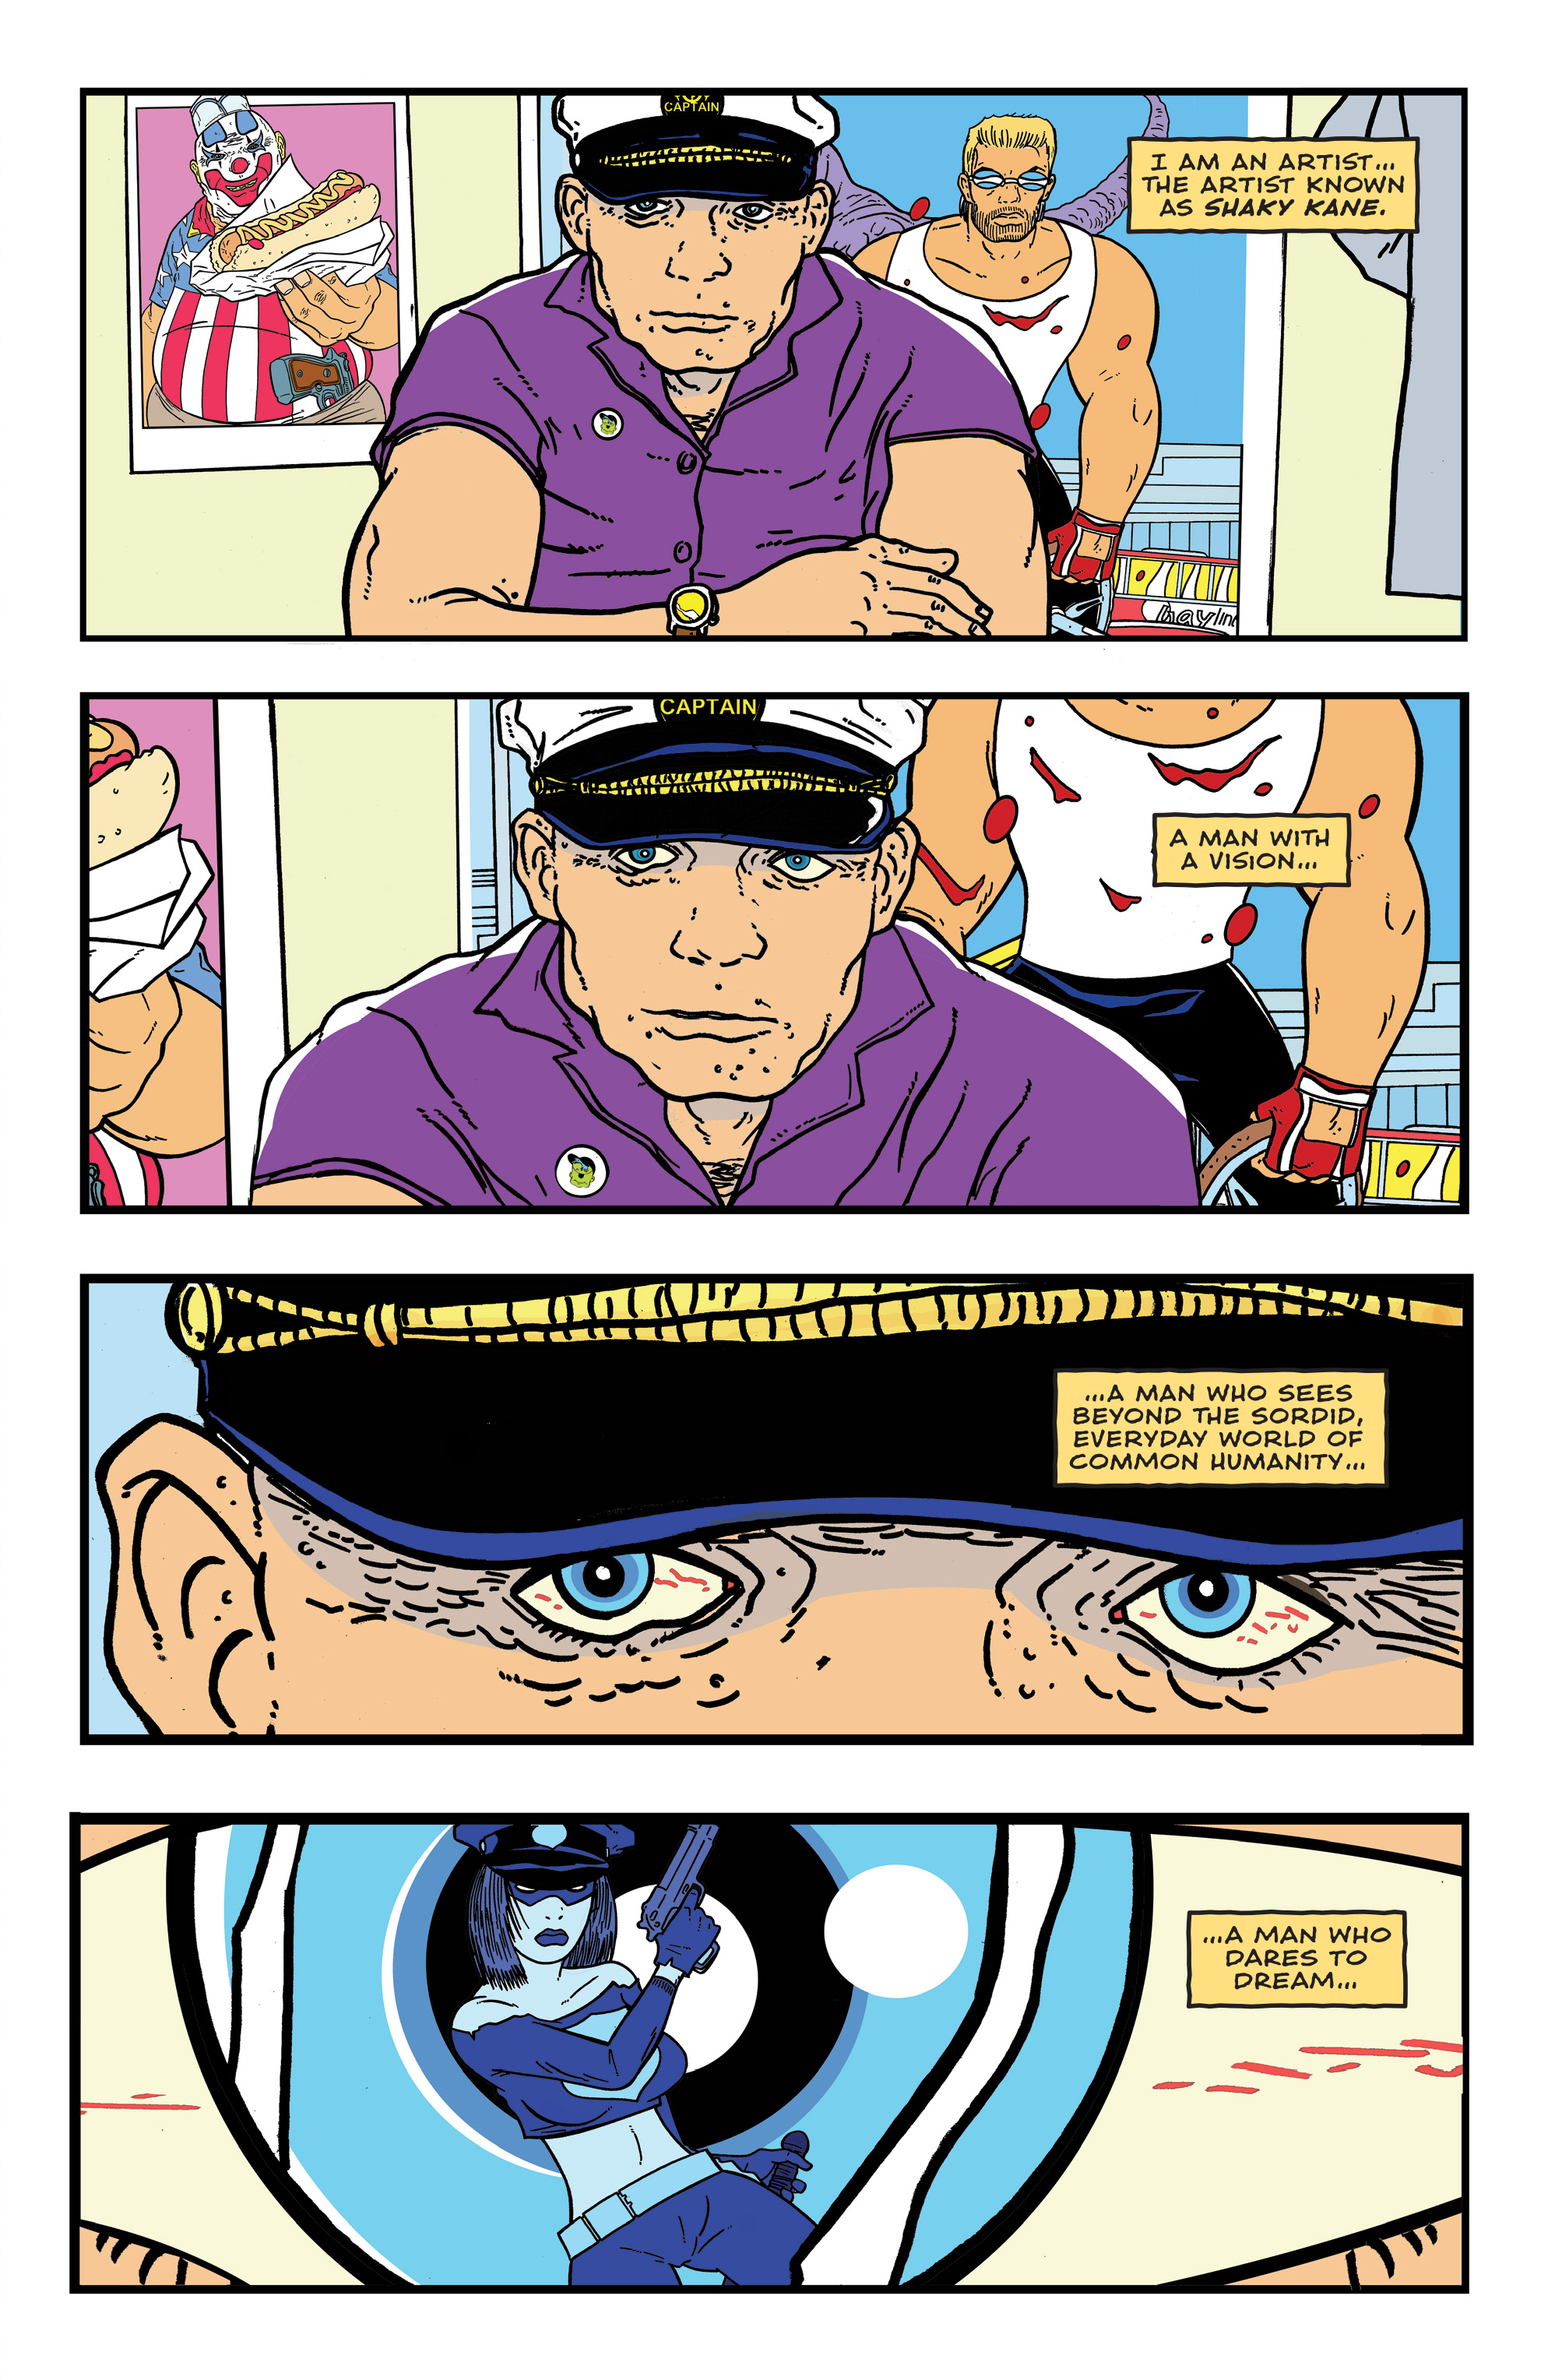 Read online Bulletproof Coffin: The Thousand Yard Stare comic -  Issue # Full - 3